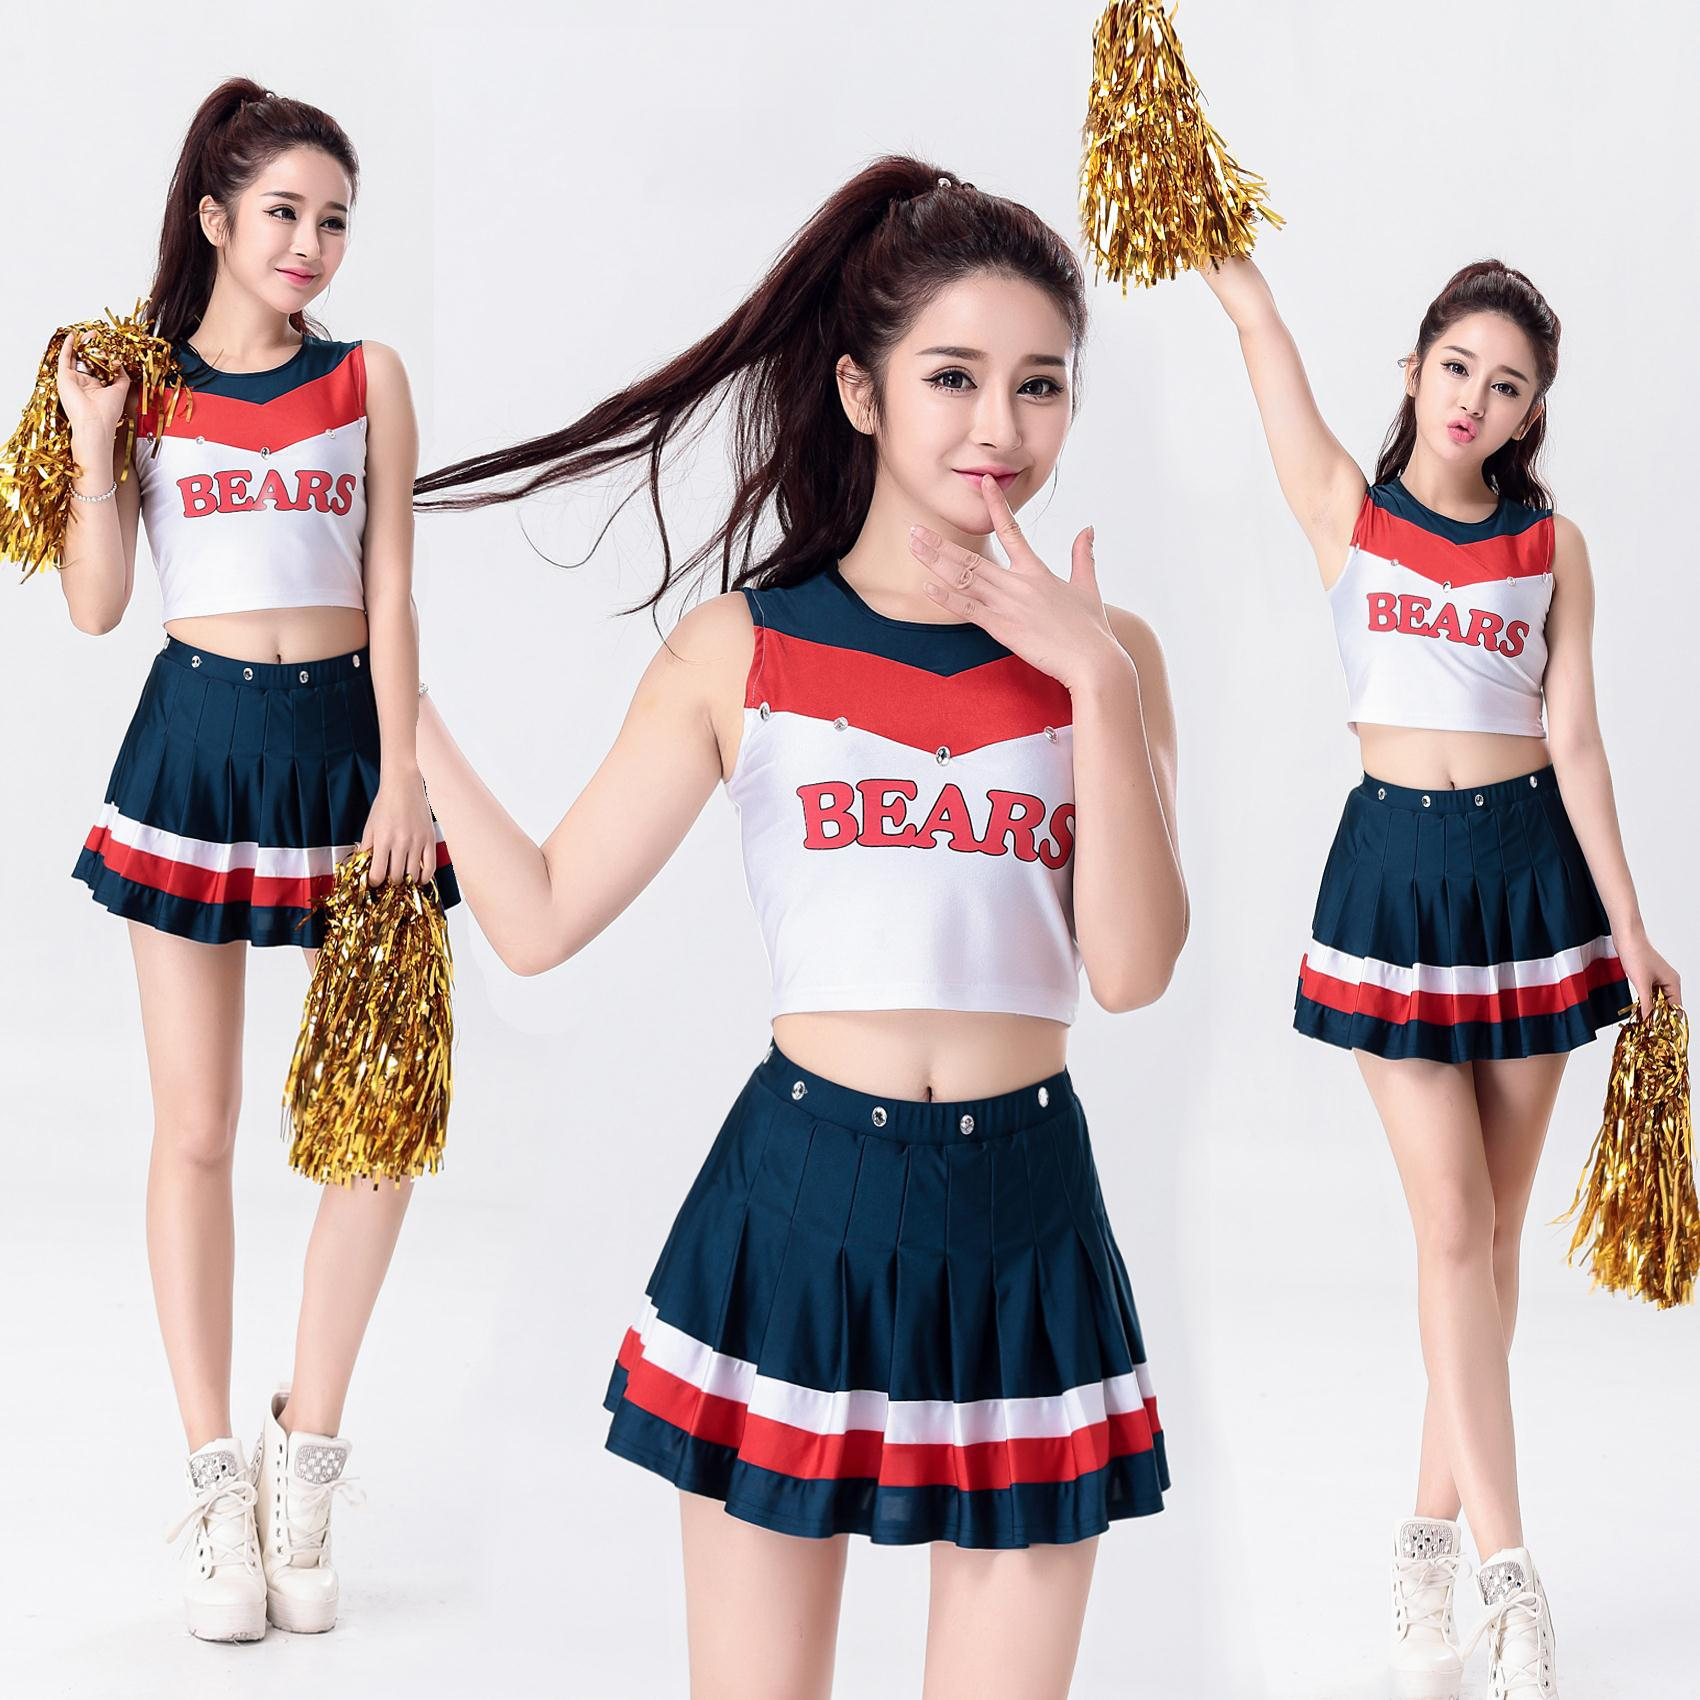 Cheerleading Uniforms Students Games Cheerleaders Clothing Women Girls School Uniforms Adults Cheerleader Dancing Costumes